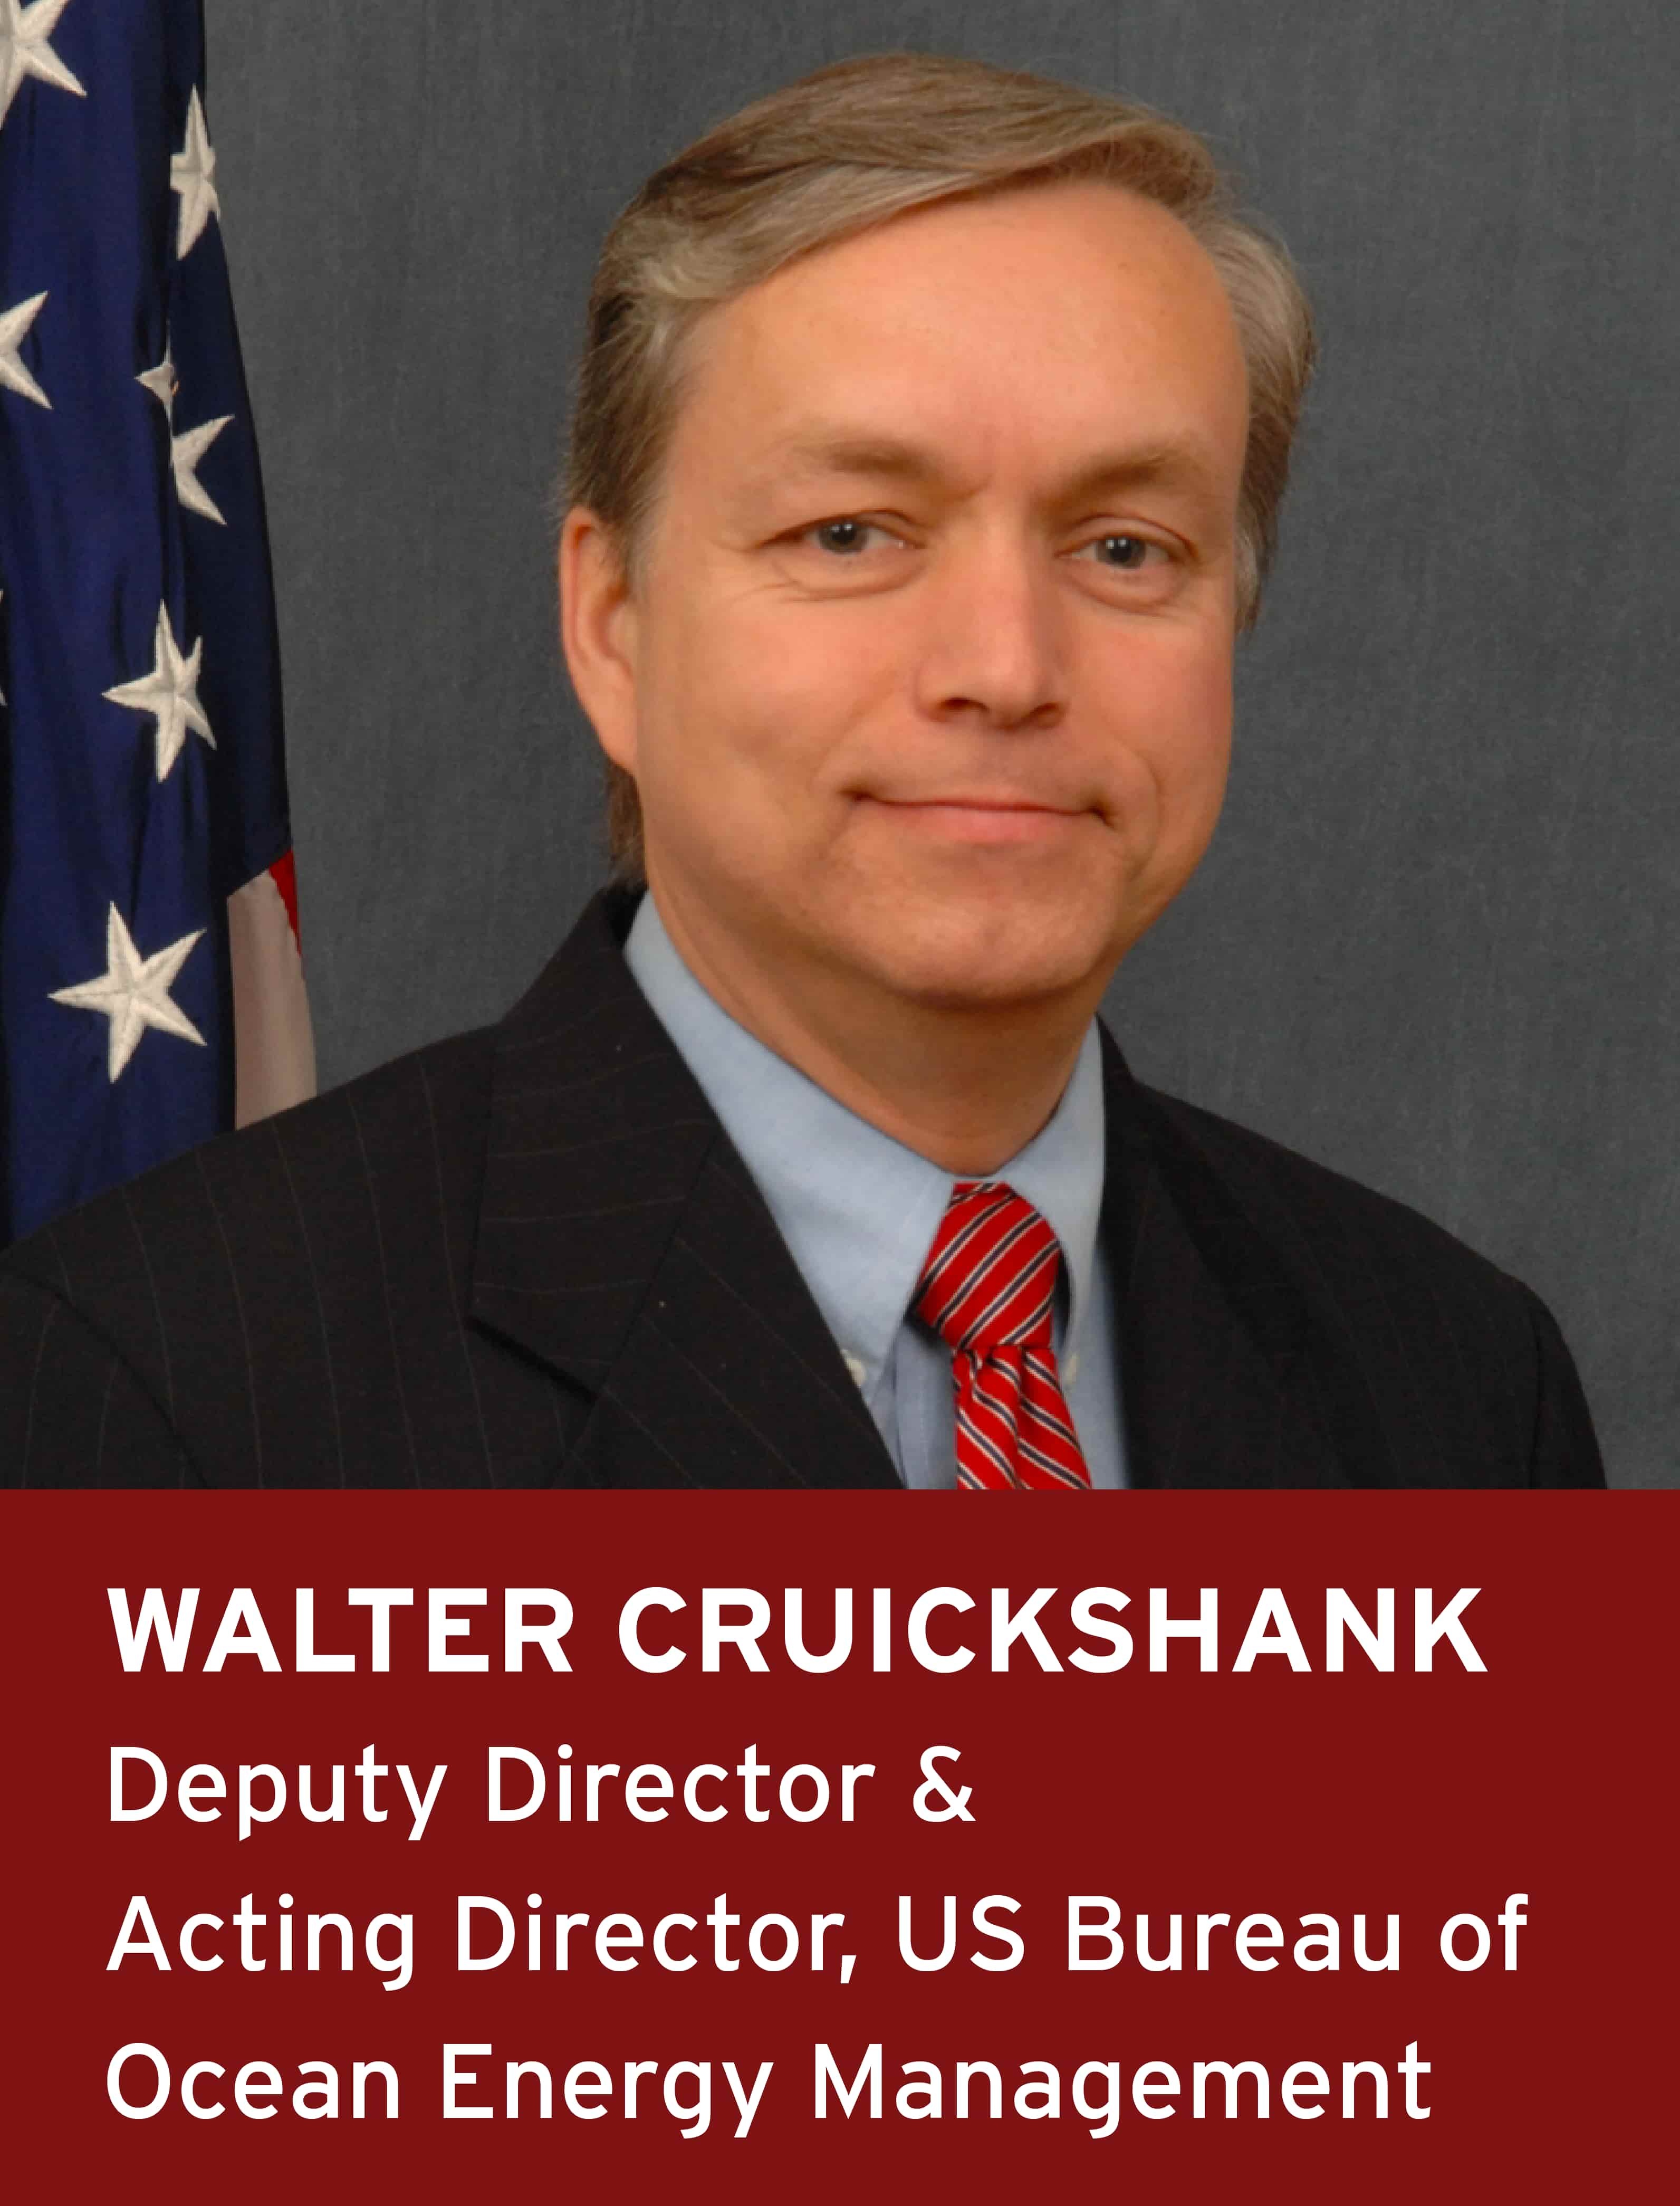 Walter Cruickshank, Deputy Director & Acting Director, US Bureau of Ocean Energy Management